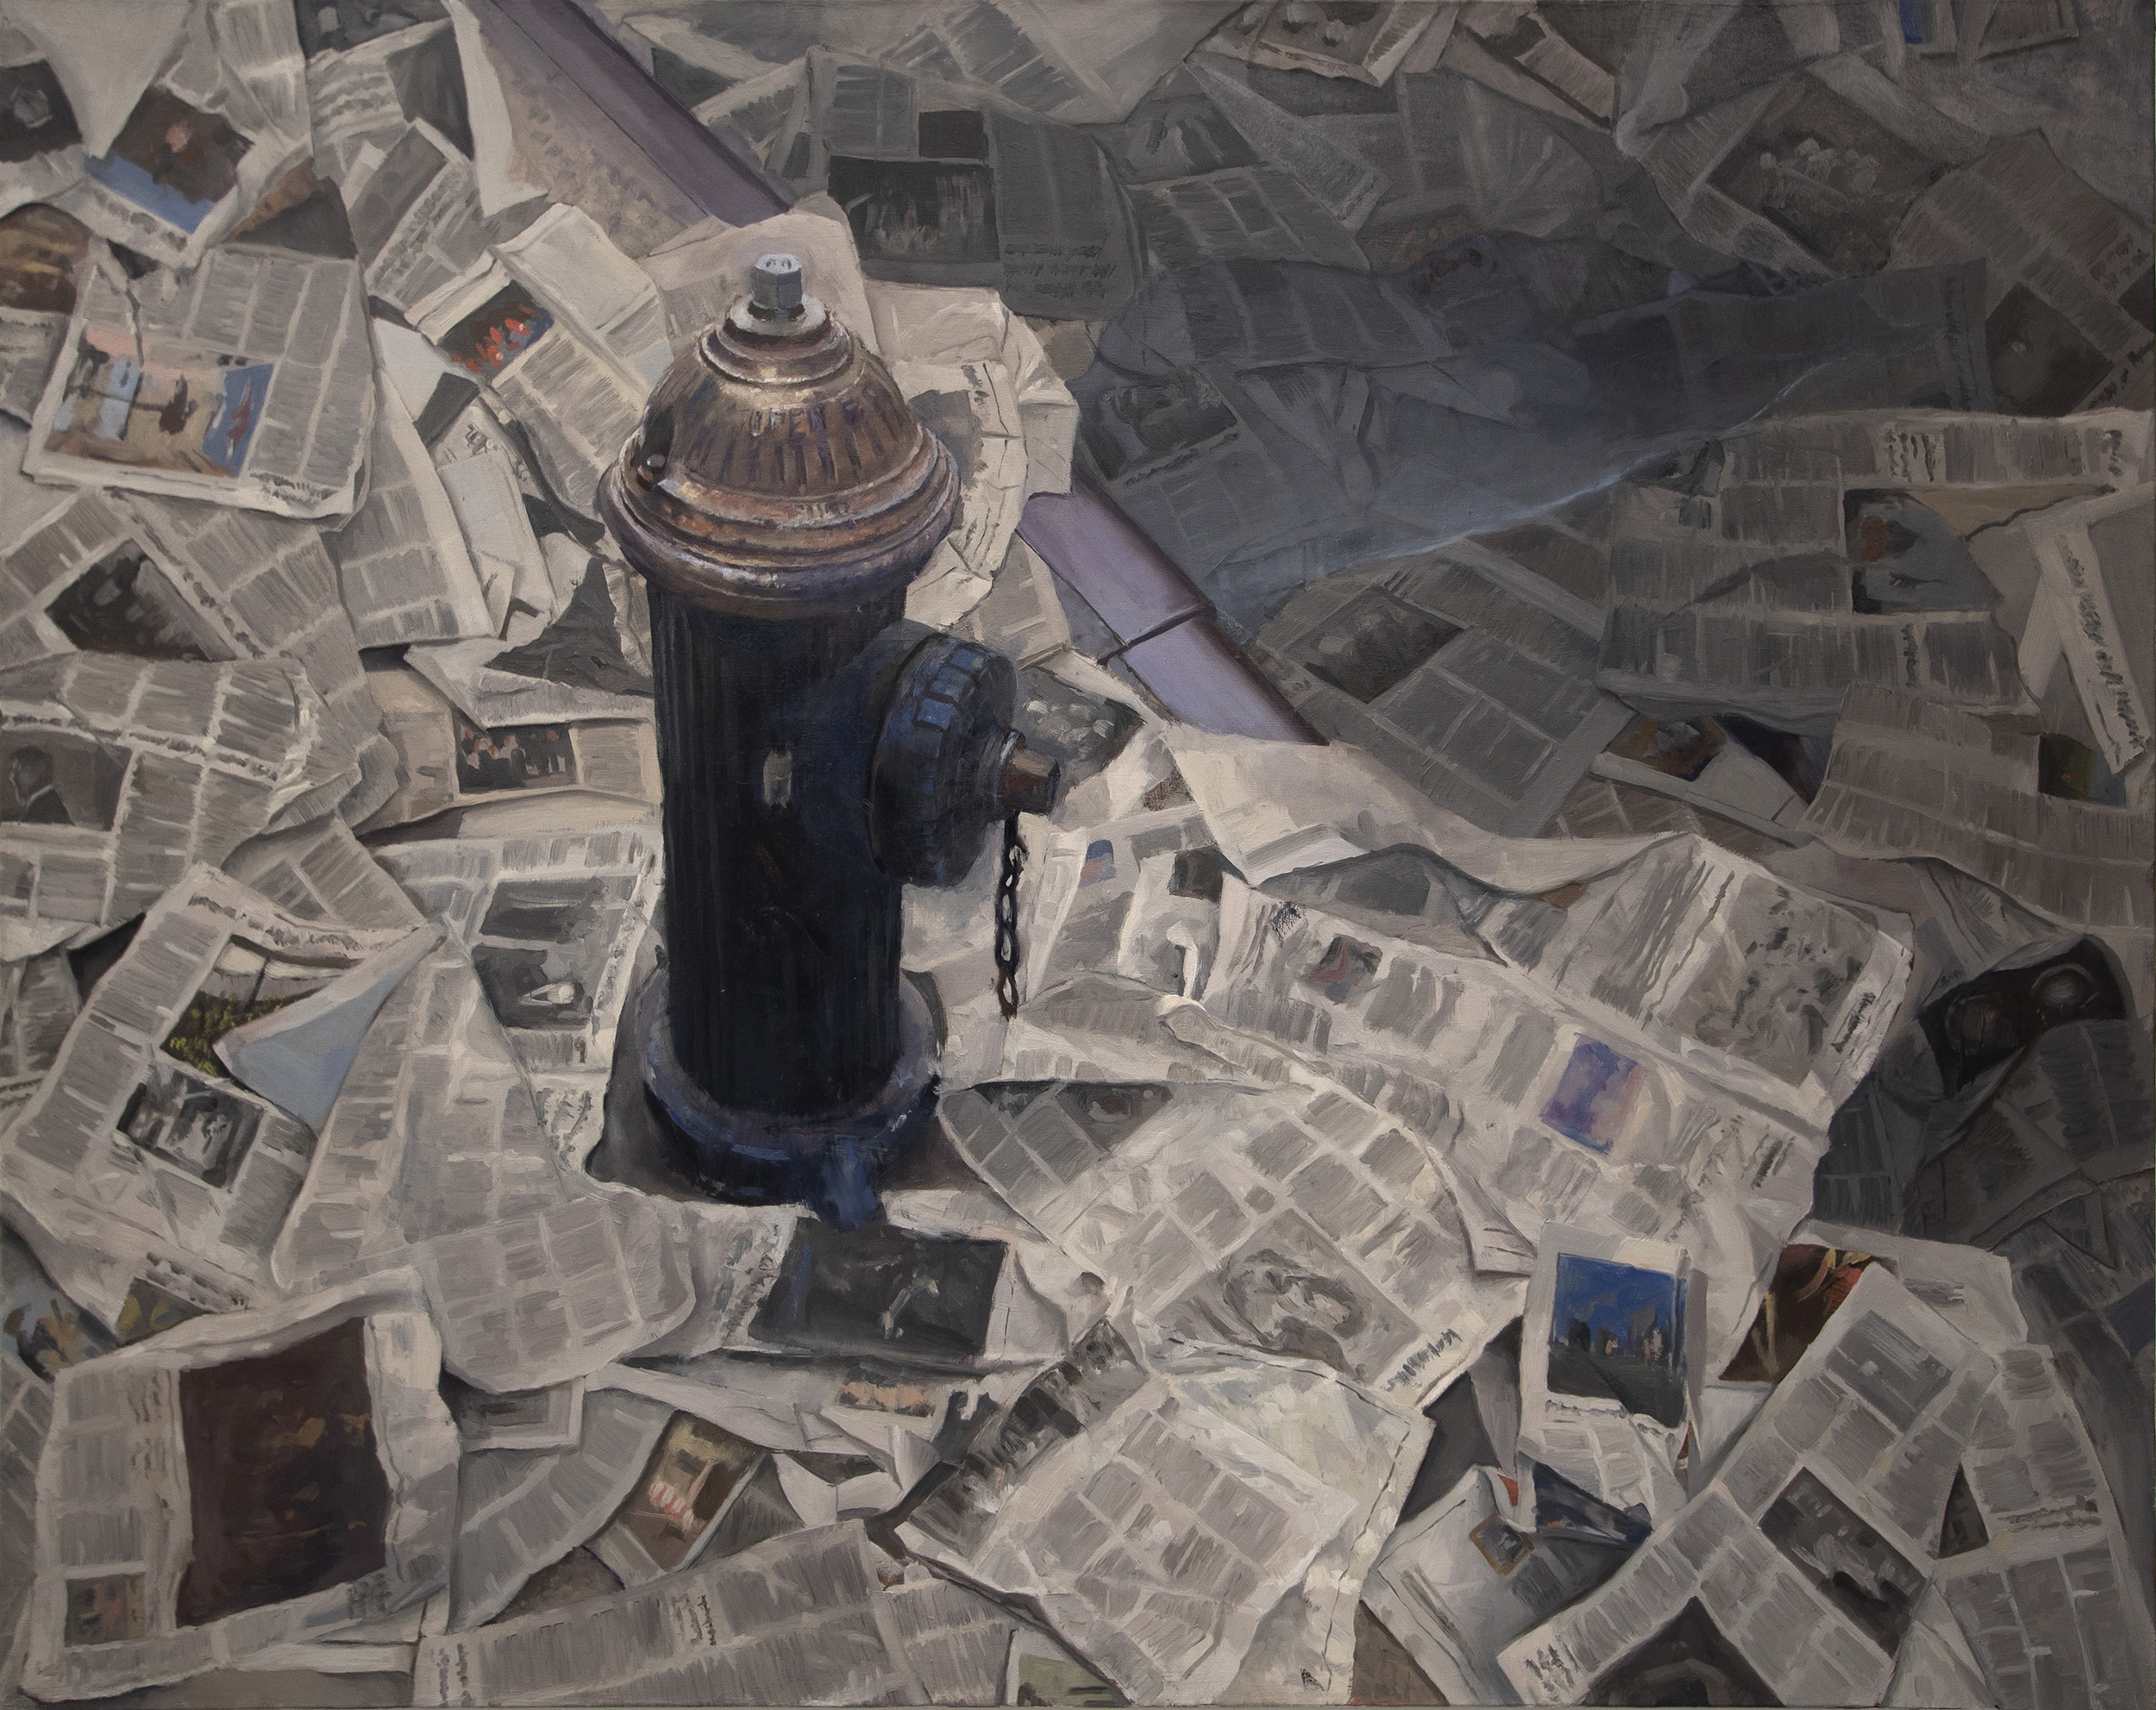 Painting, 'Real News', fire hydrant surrounded by discarded newspapers